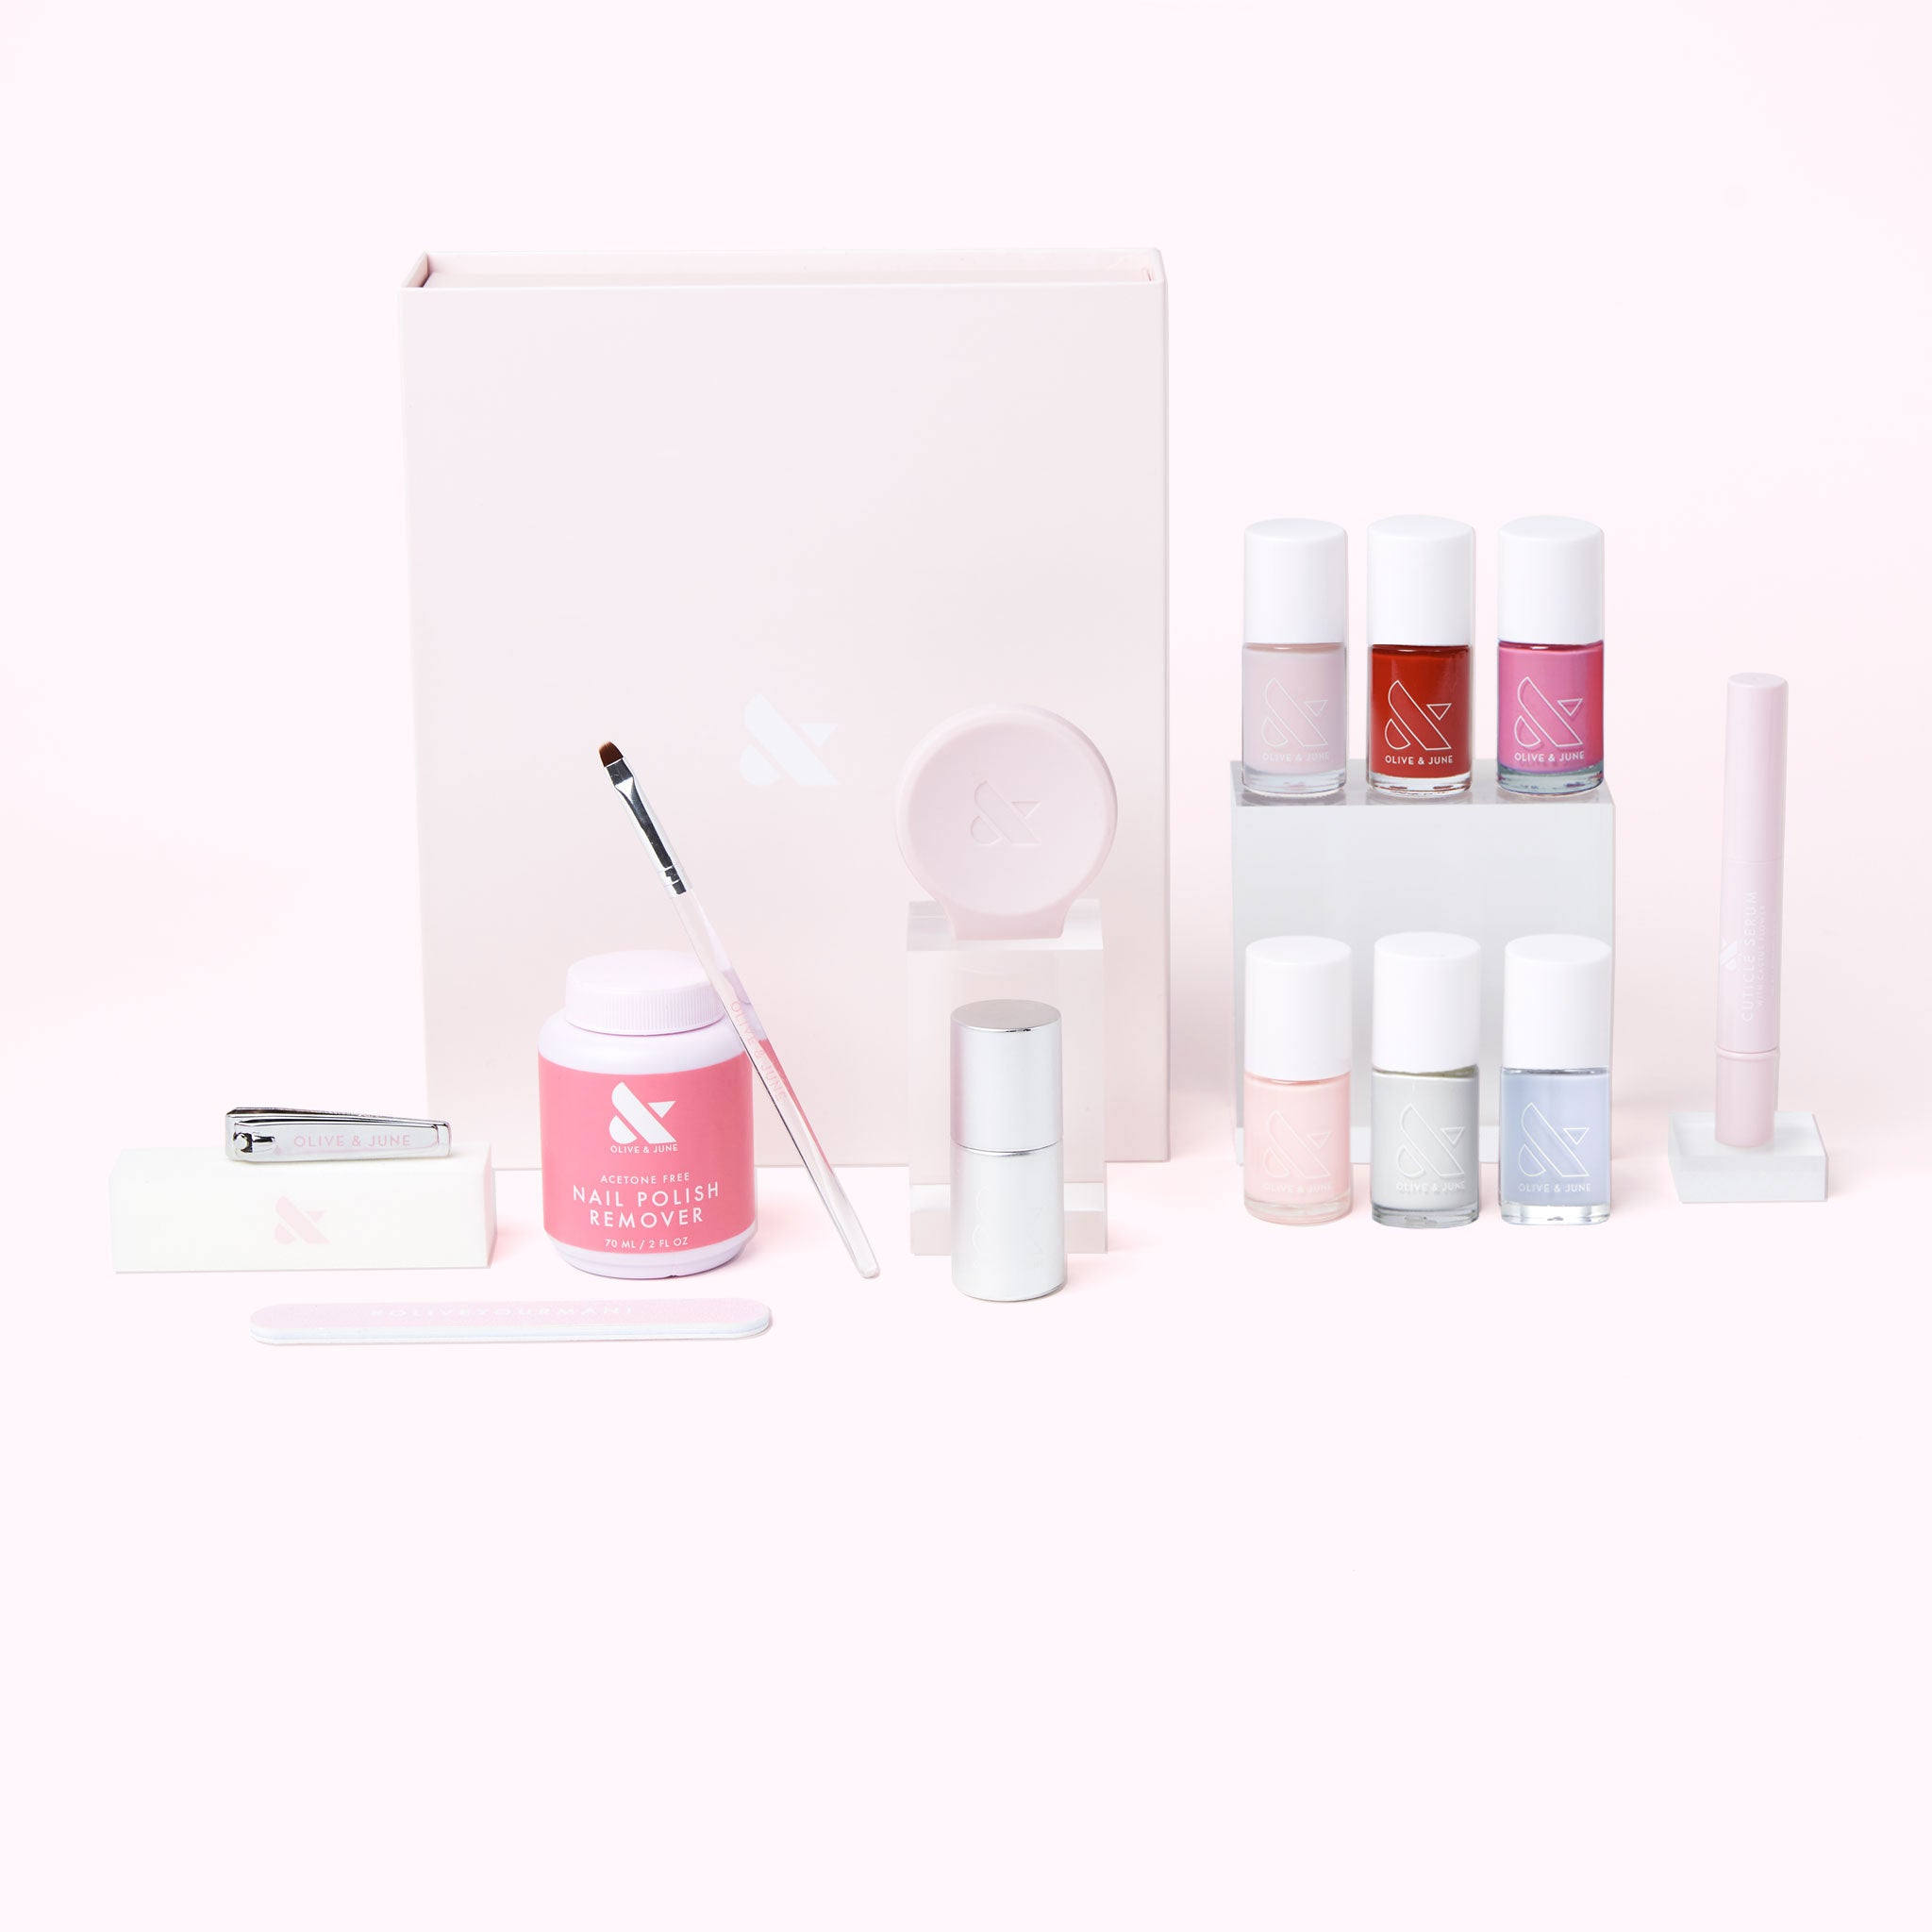 Bestsellers - Mani System